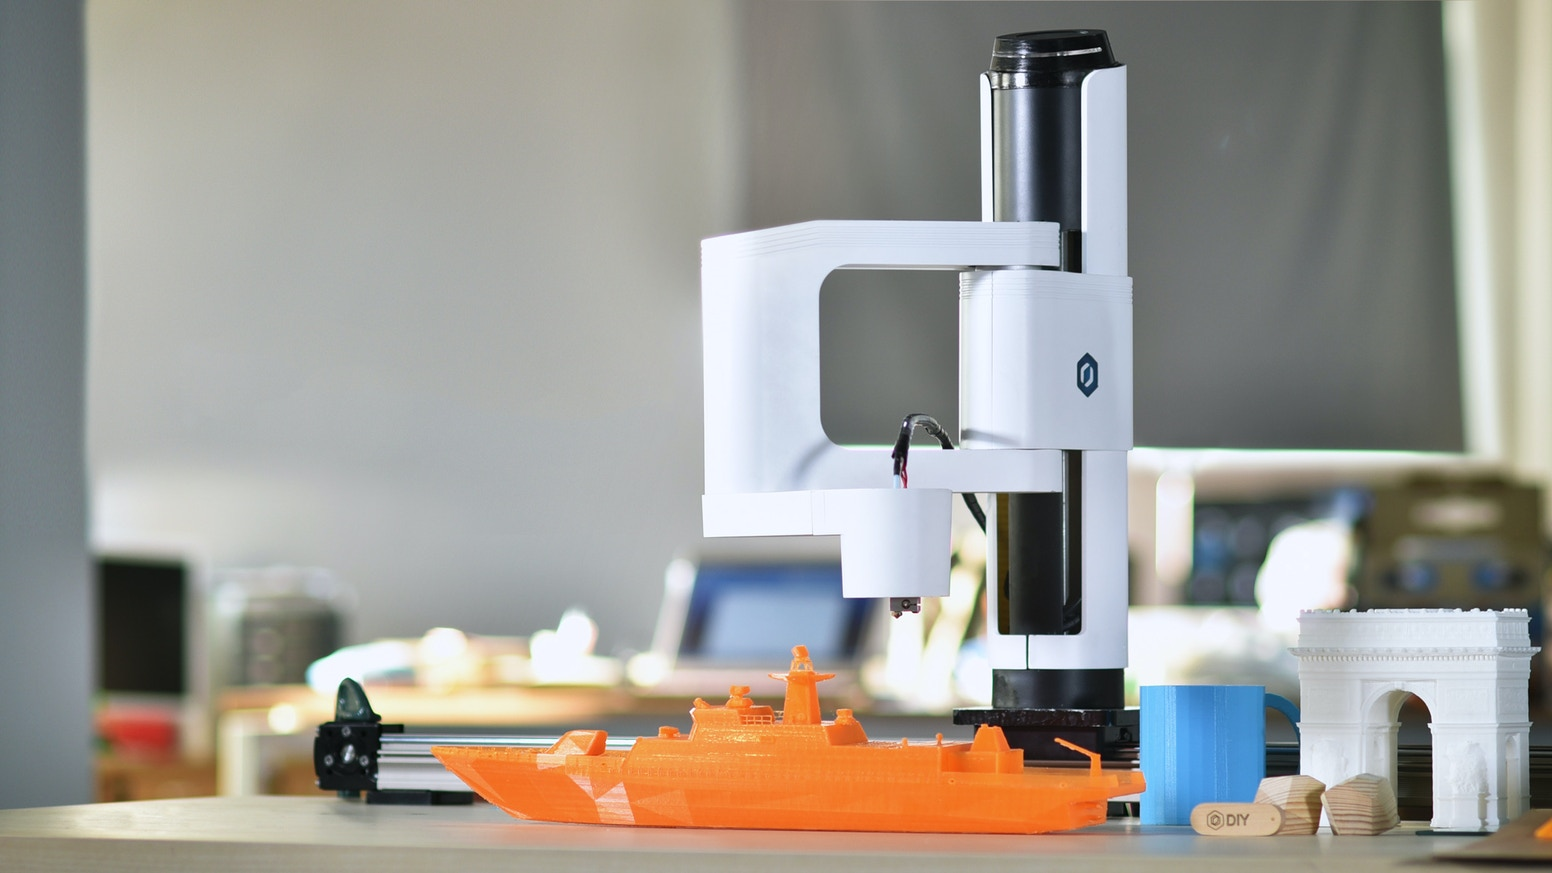 Professional SCARA based robotic arm with interchangeable heads and computer vision. 3D print, laser engrave, solder, pick & place...